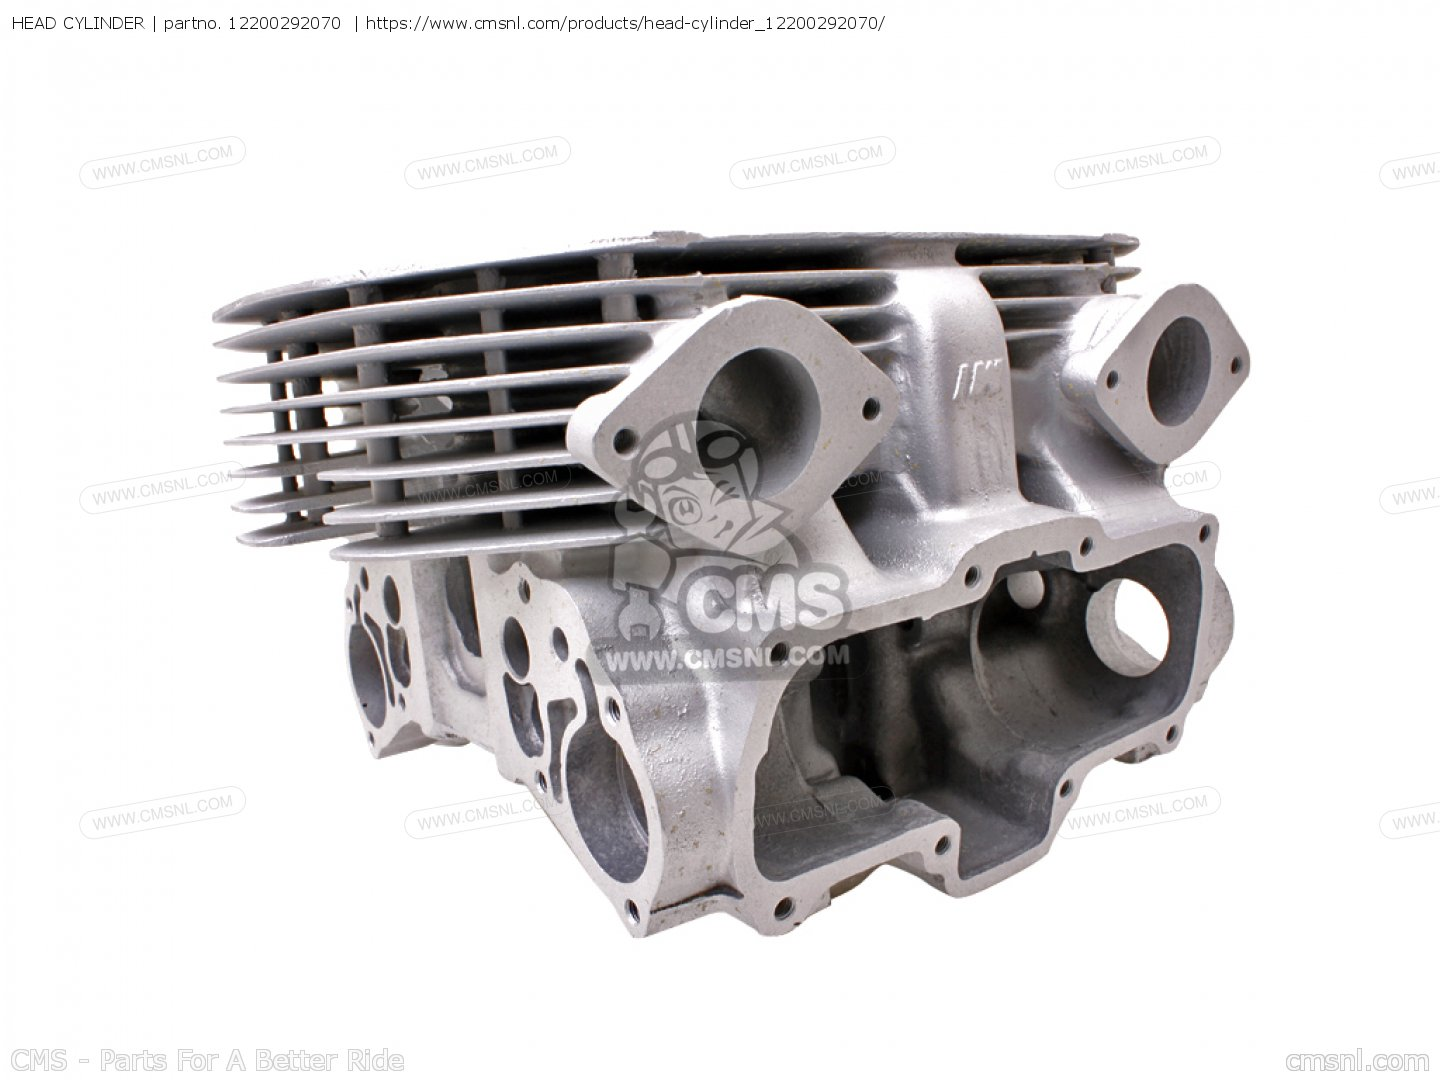 HEAD CYLINDER For CB450K1 1968 USA